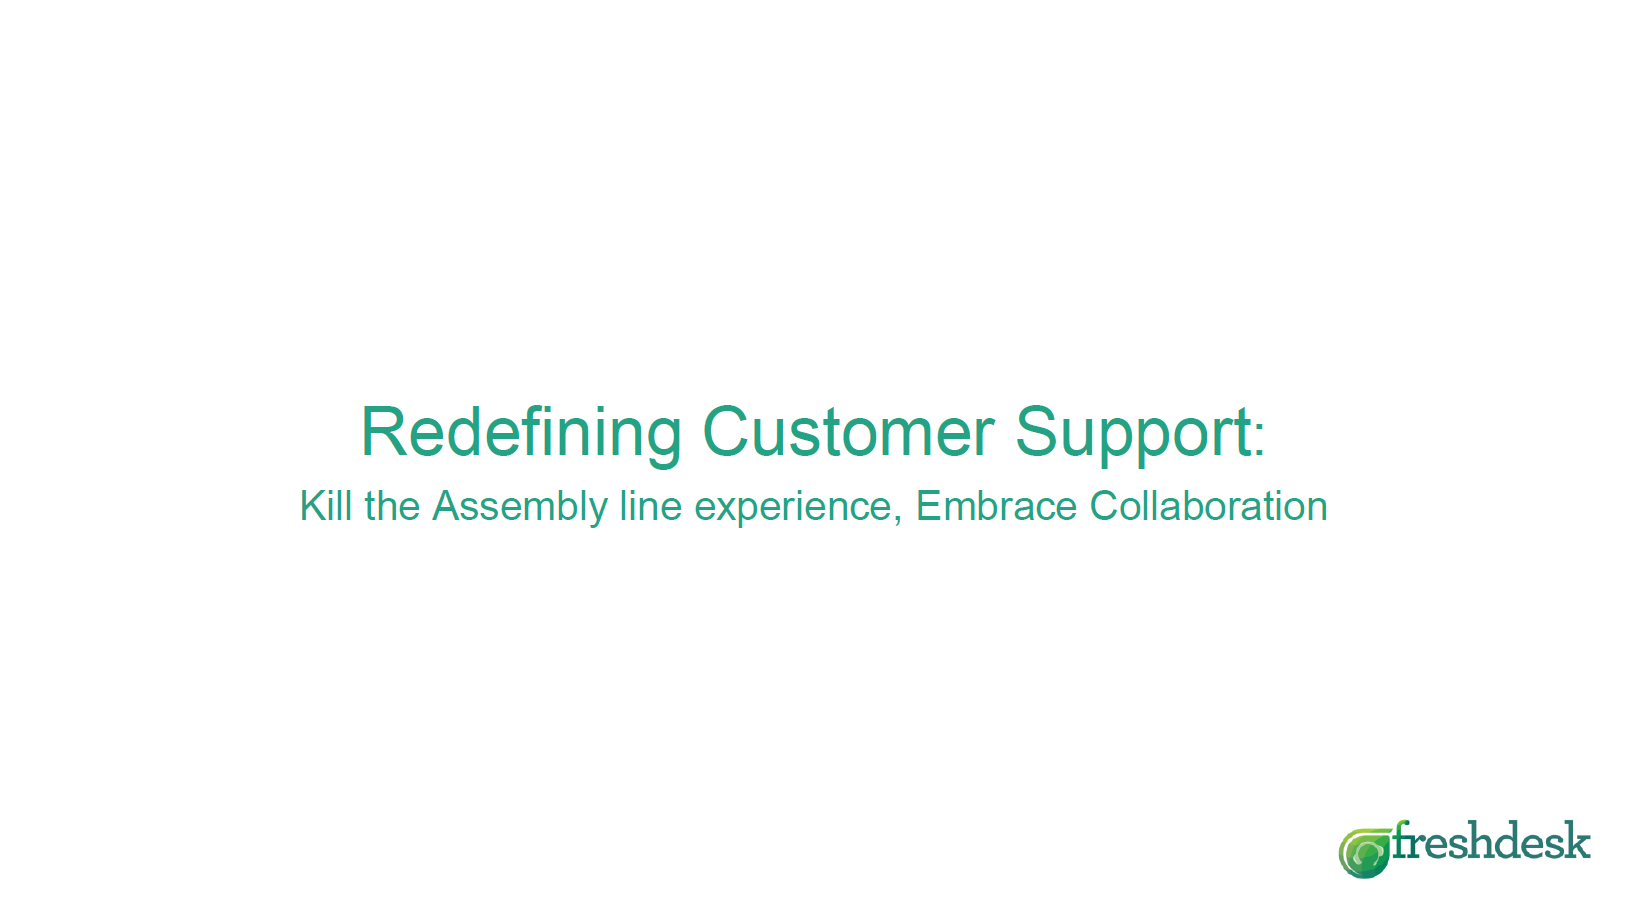 Redefining Customer Support: Kill the Assembly line experience, Embrace Collaboration